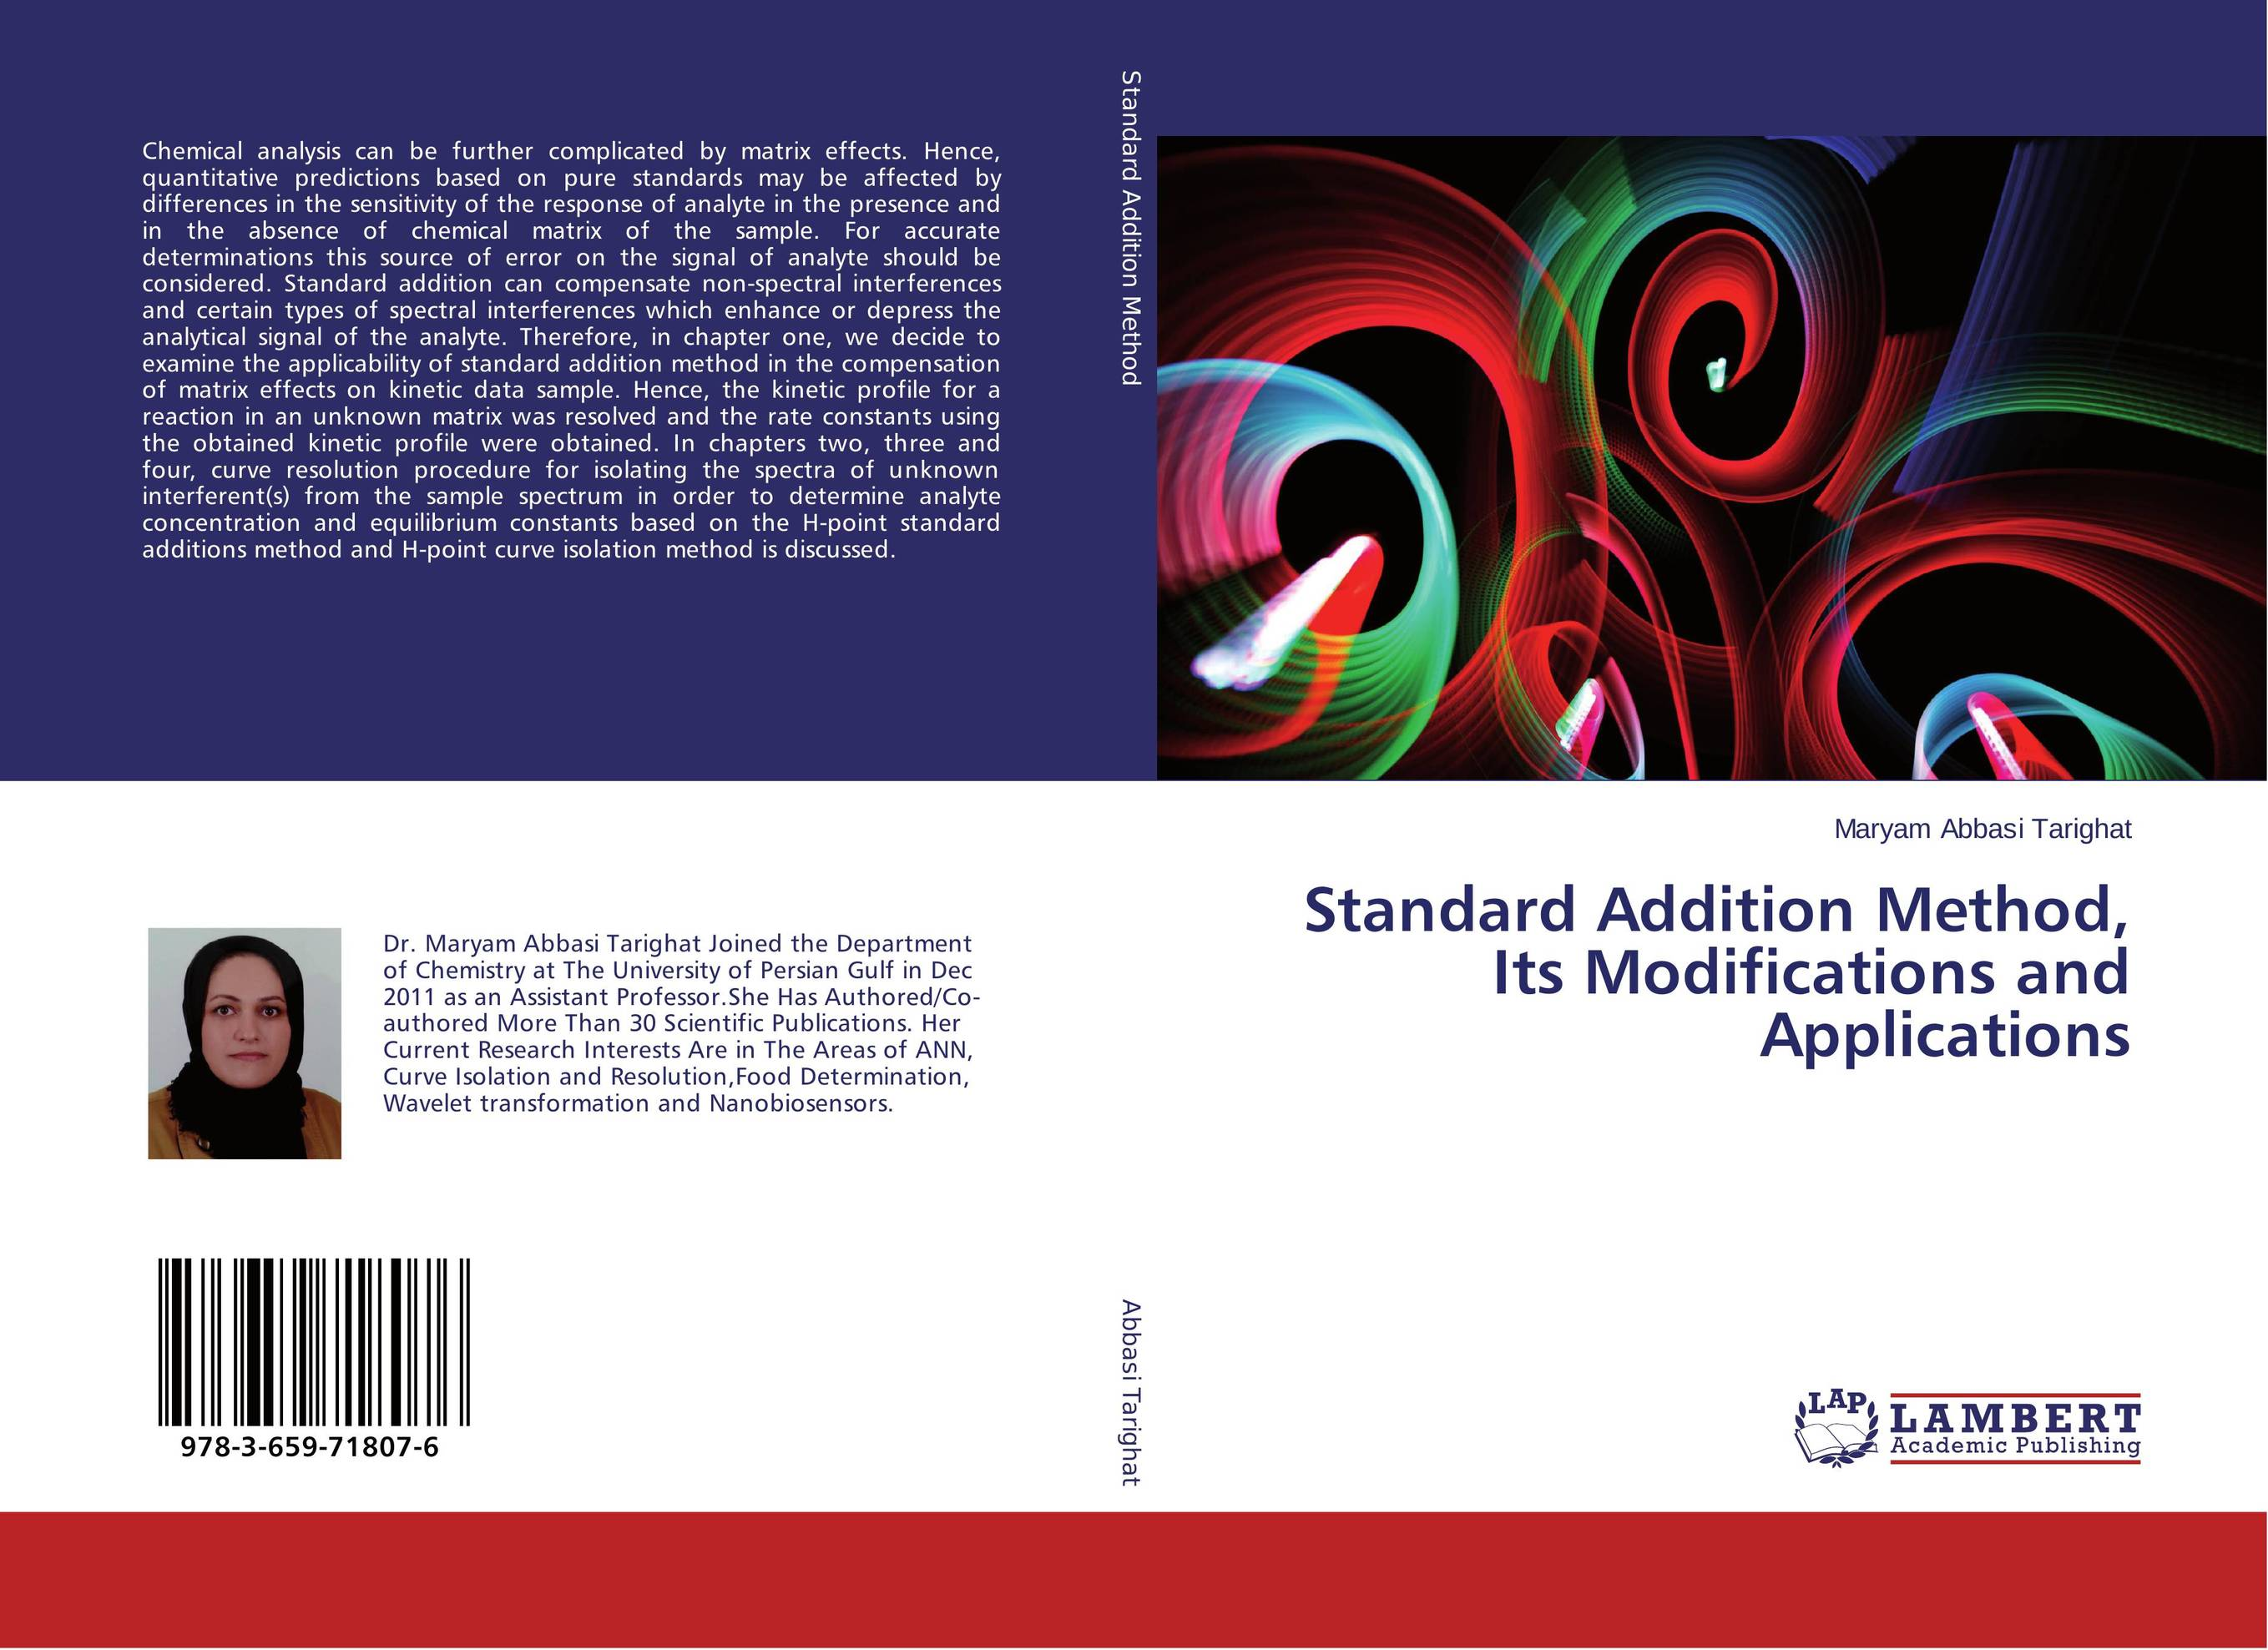 Standard Addition Method, Its Modifications and Applications michael silaev the kinetic investigation of the free radical addition